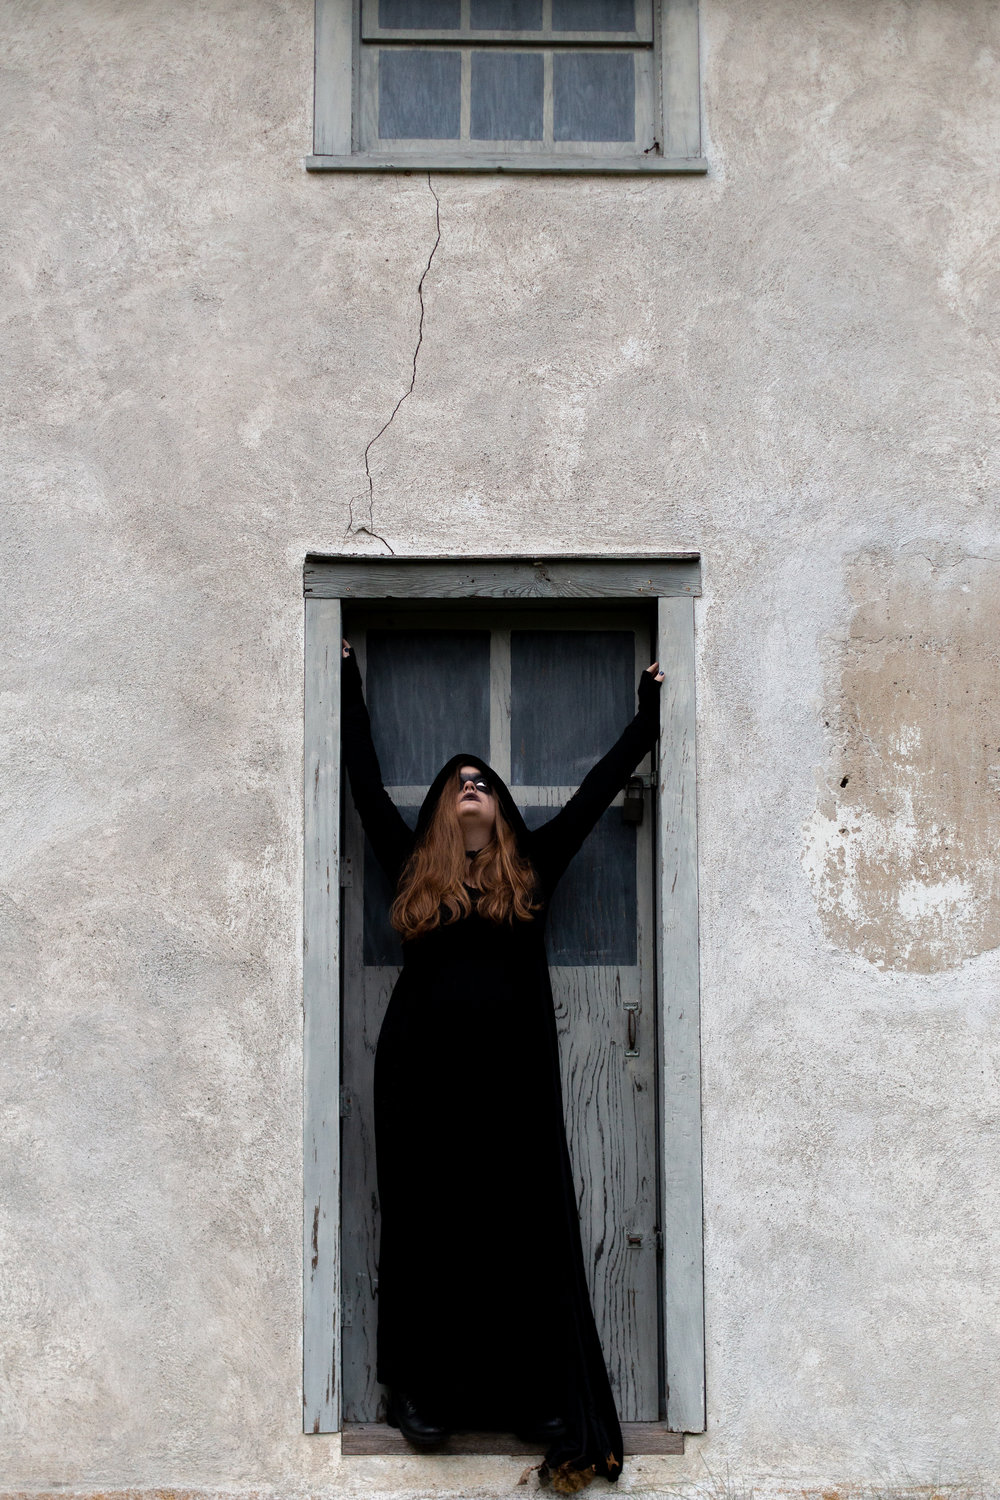 Woman dressed in all black standing in a doorway in Hewitt, NJ. Photo taken by Laughing Heart Photography.